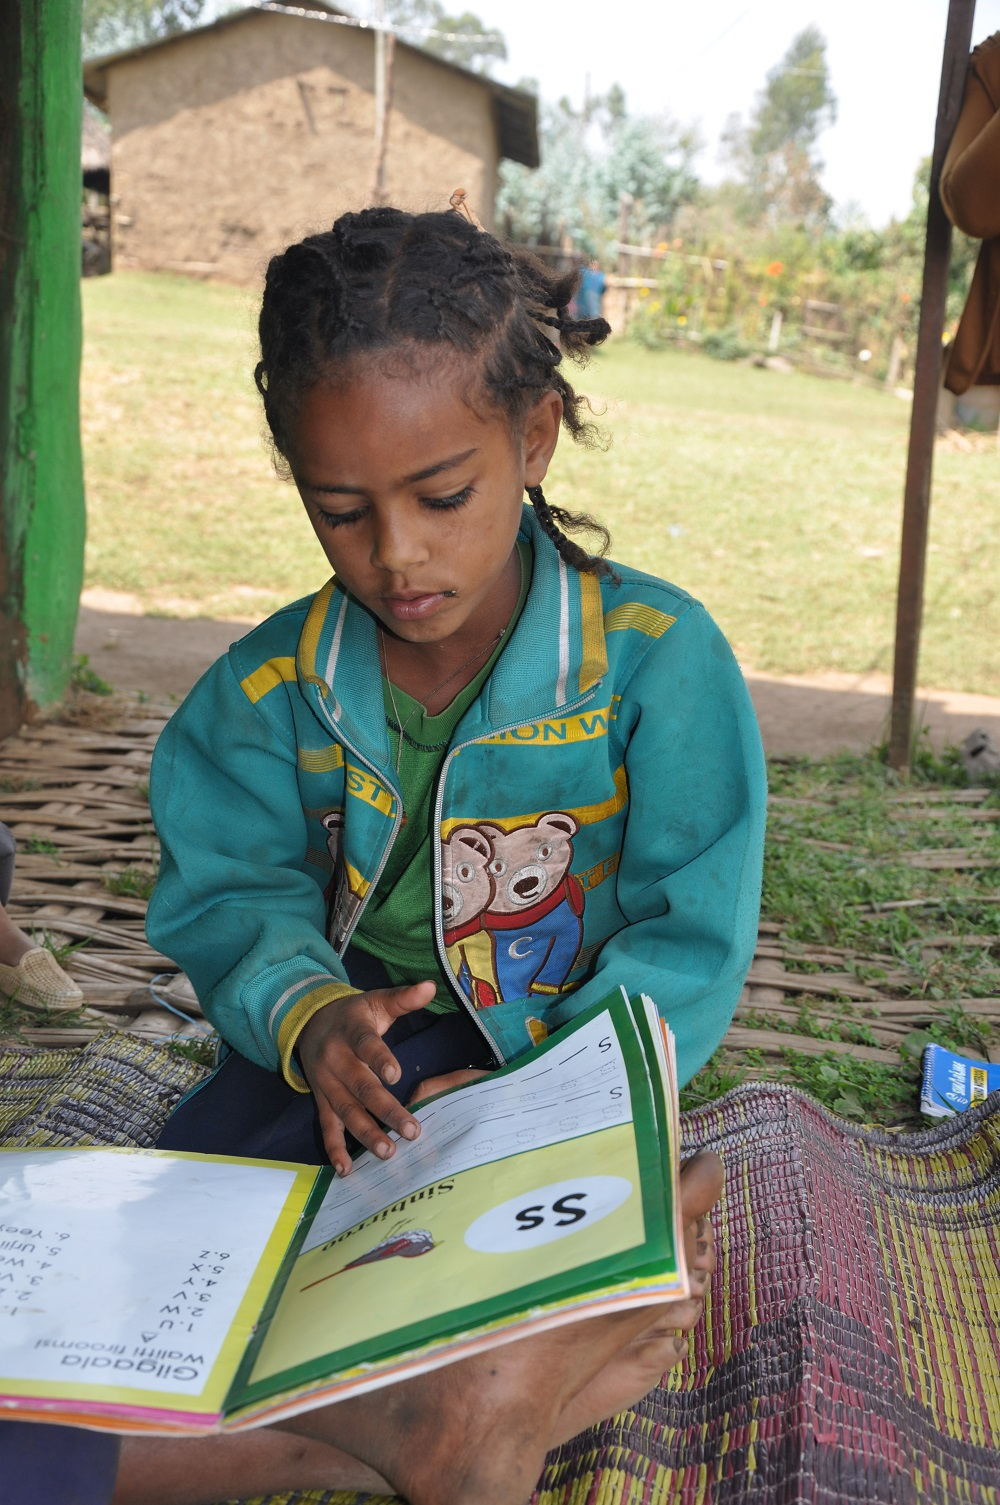 Giduma's 8-year-old sister is learning to read as well